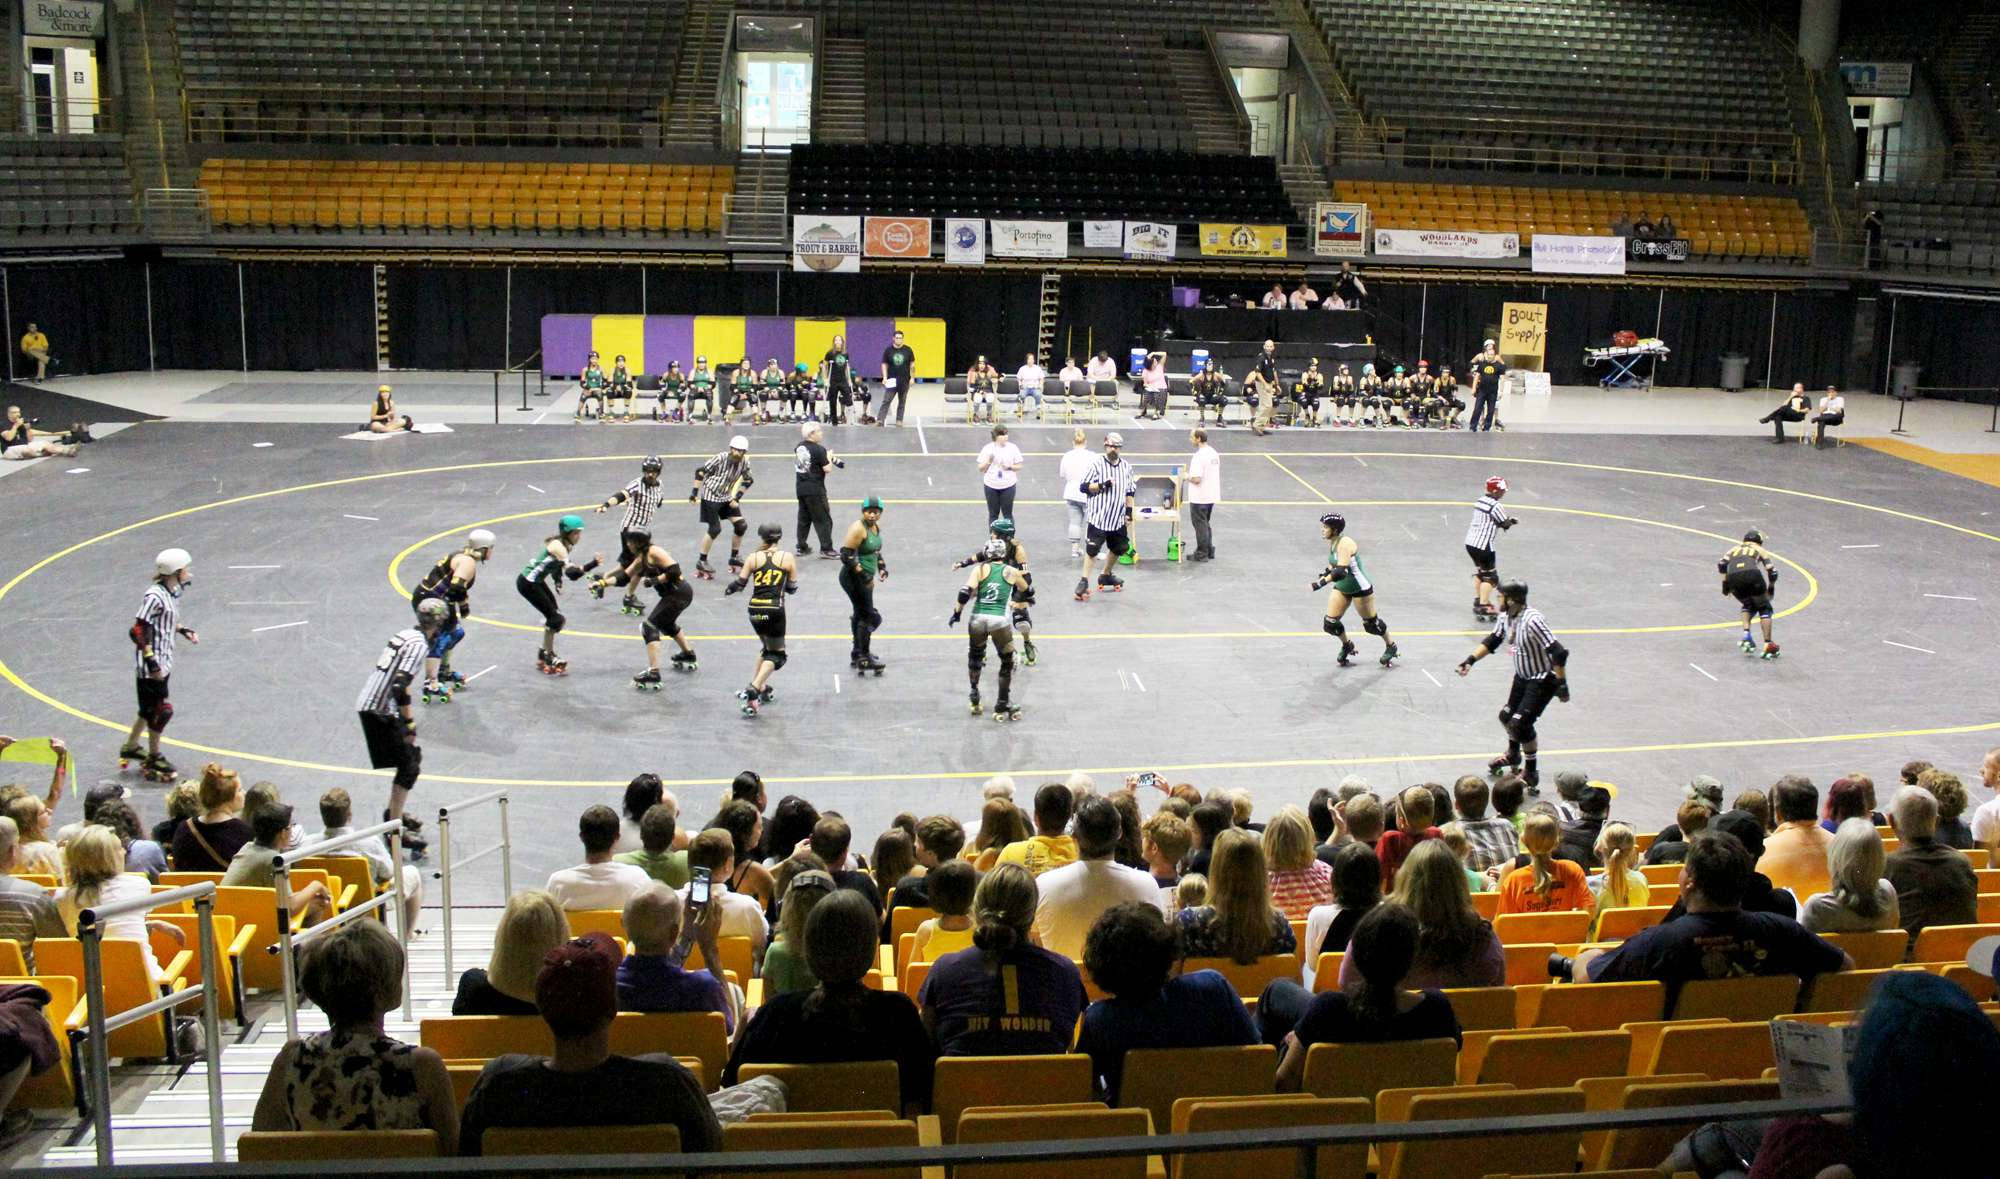 Bootcamp brings new members to Appalachian Roller Girls